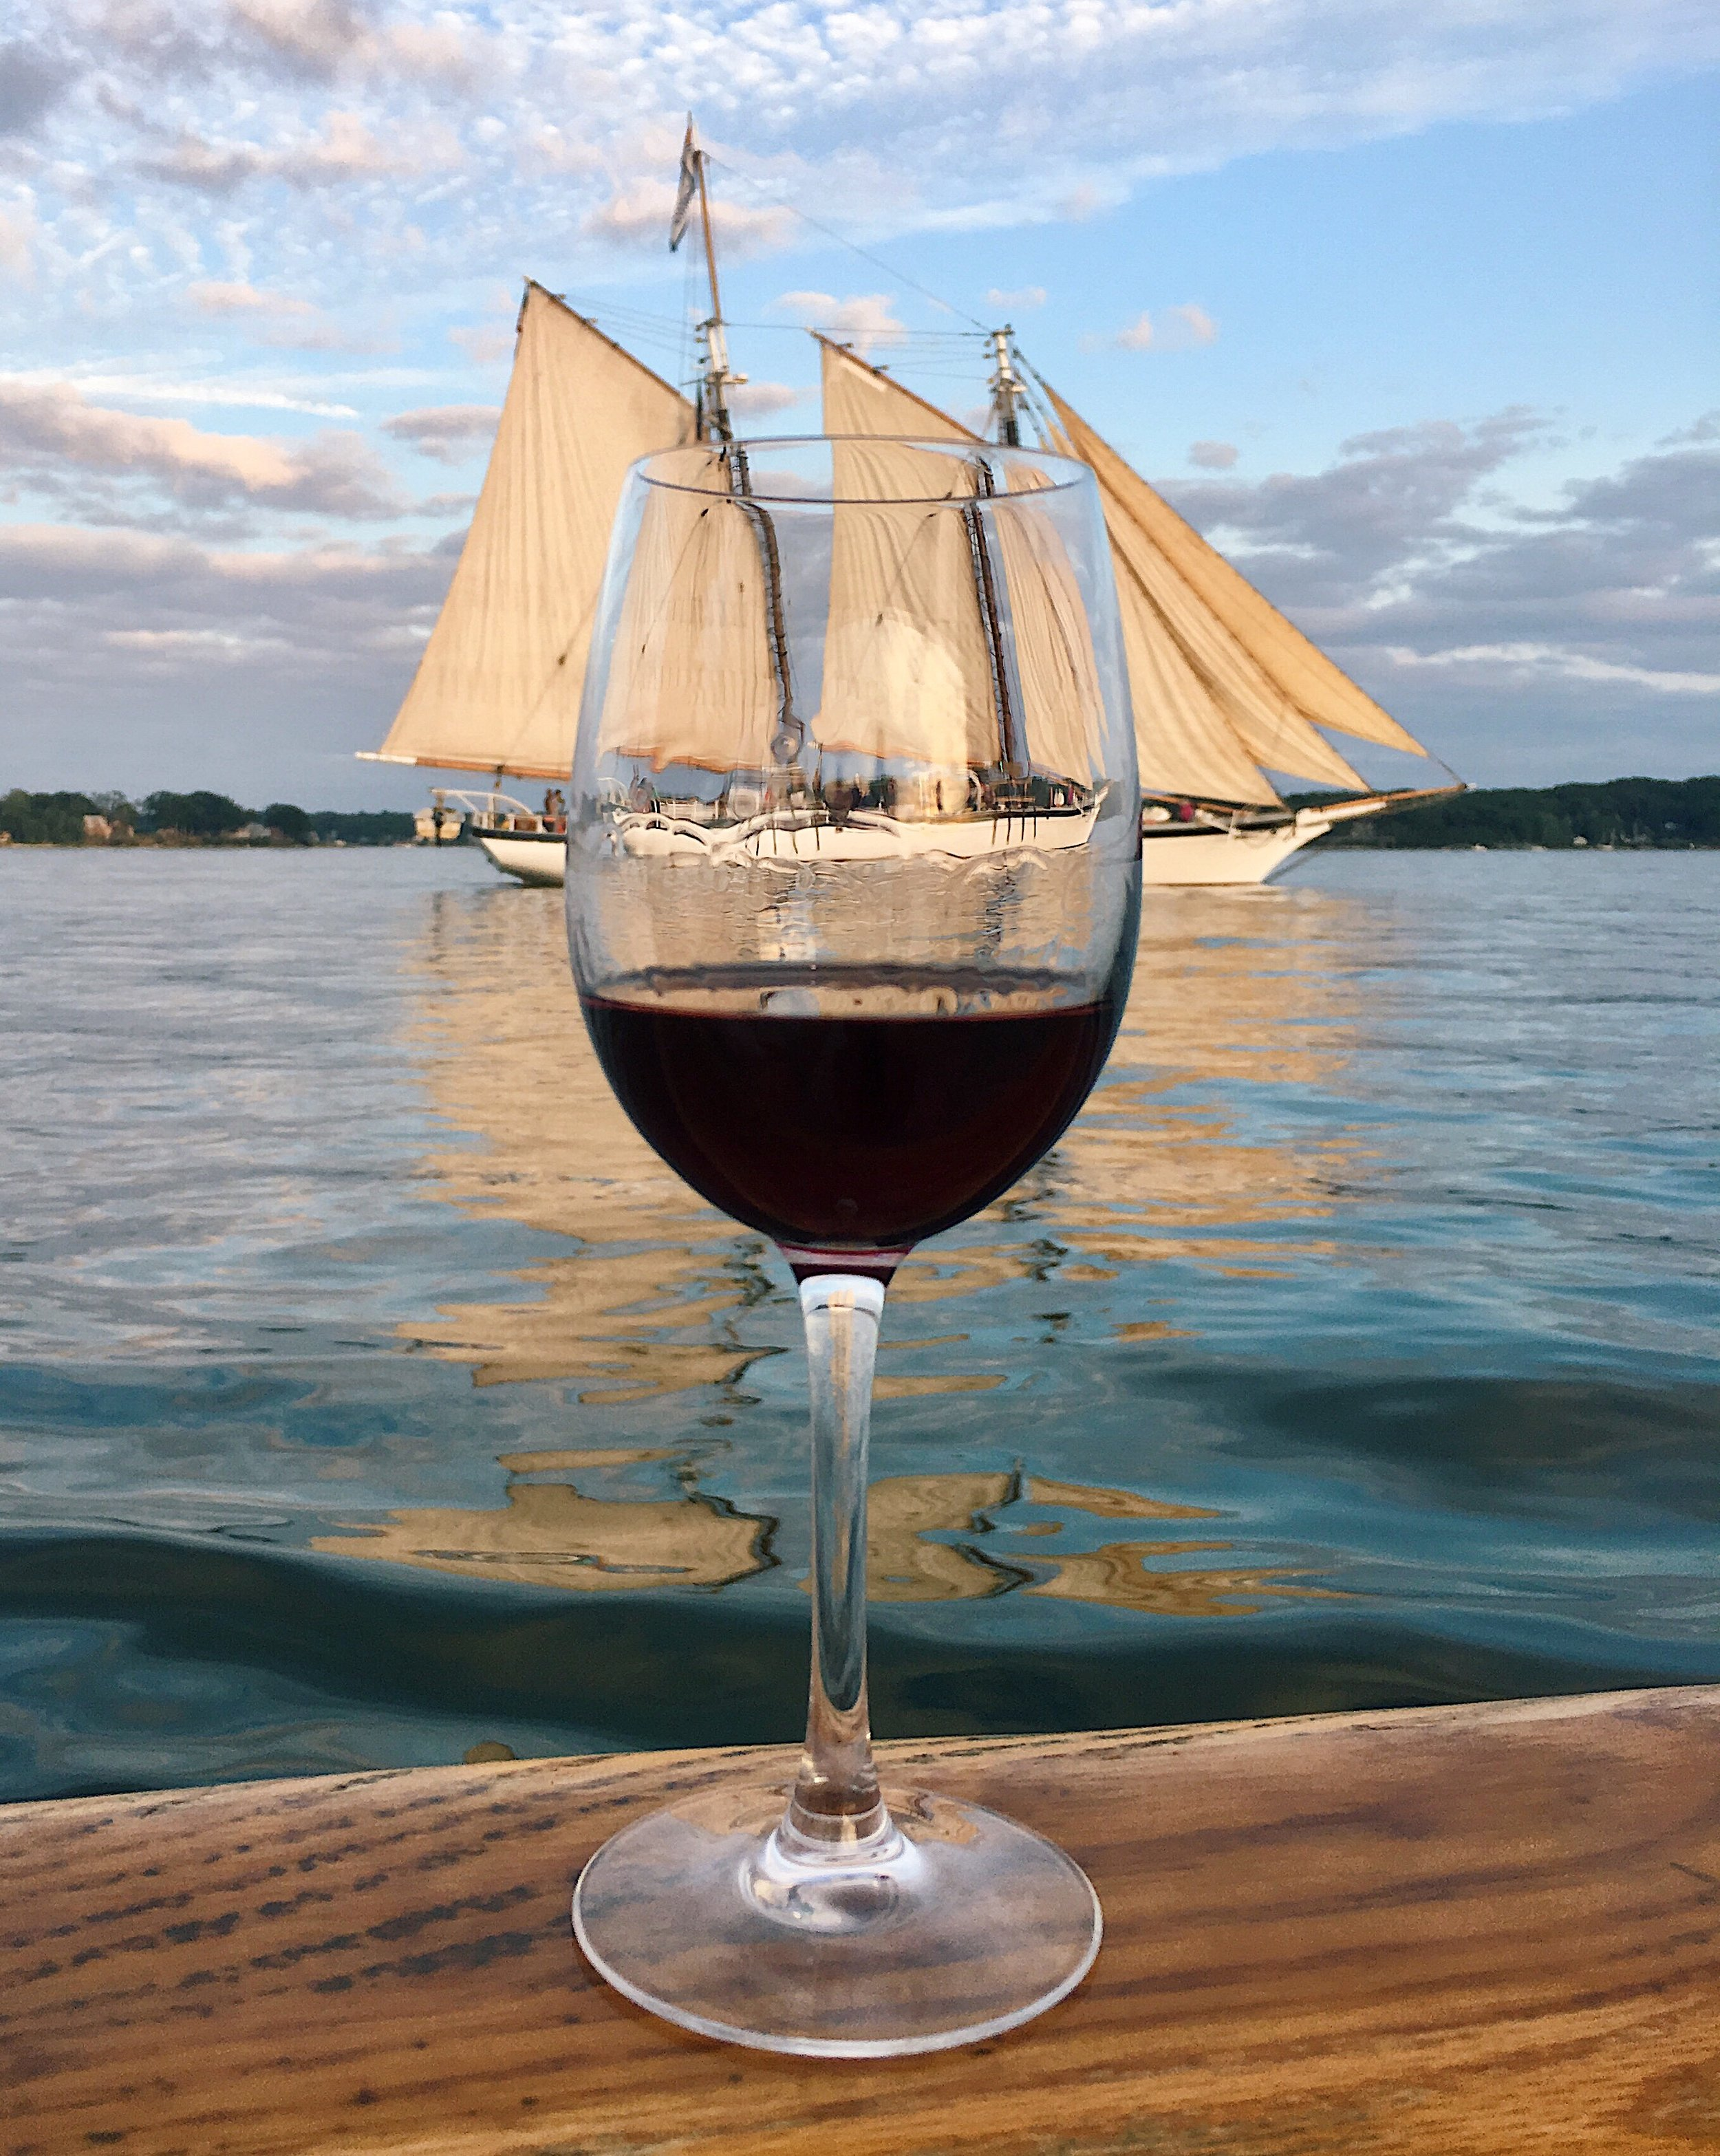 wine_wise_events_portland_maine_wine_sailwine_wise_events_portland_maine_wine_sailSail 2.jpg